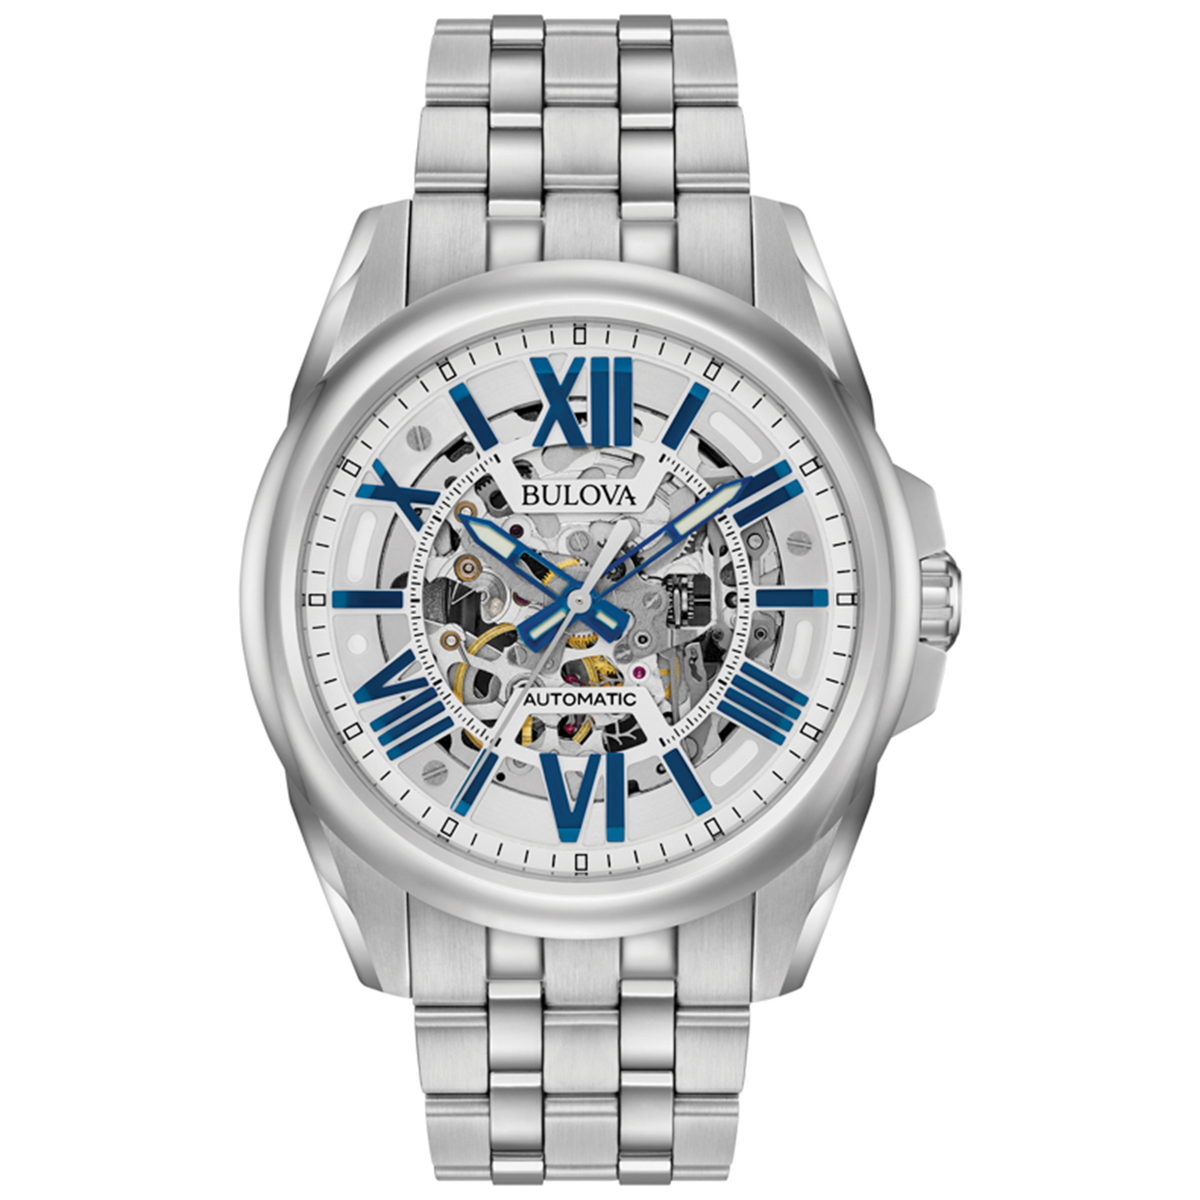 Bulova - Men's Classic Automatic Watch